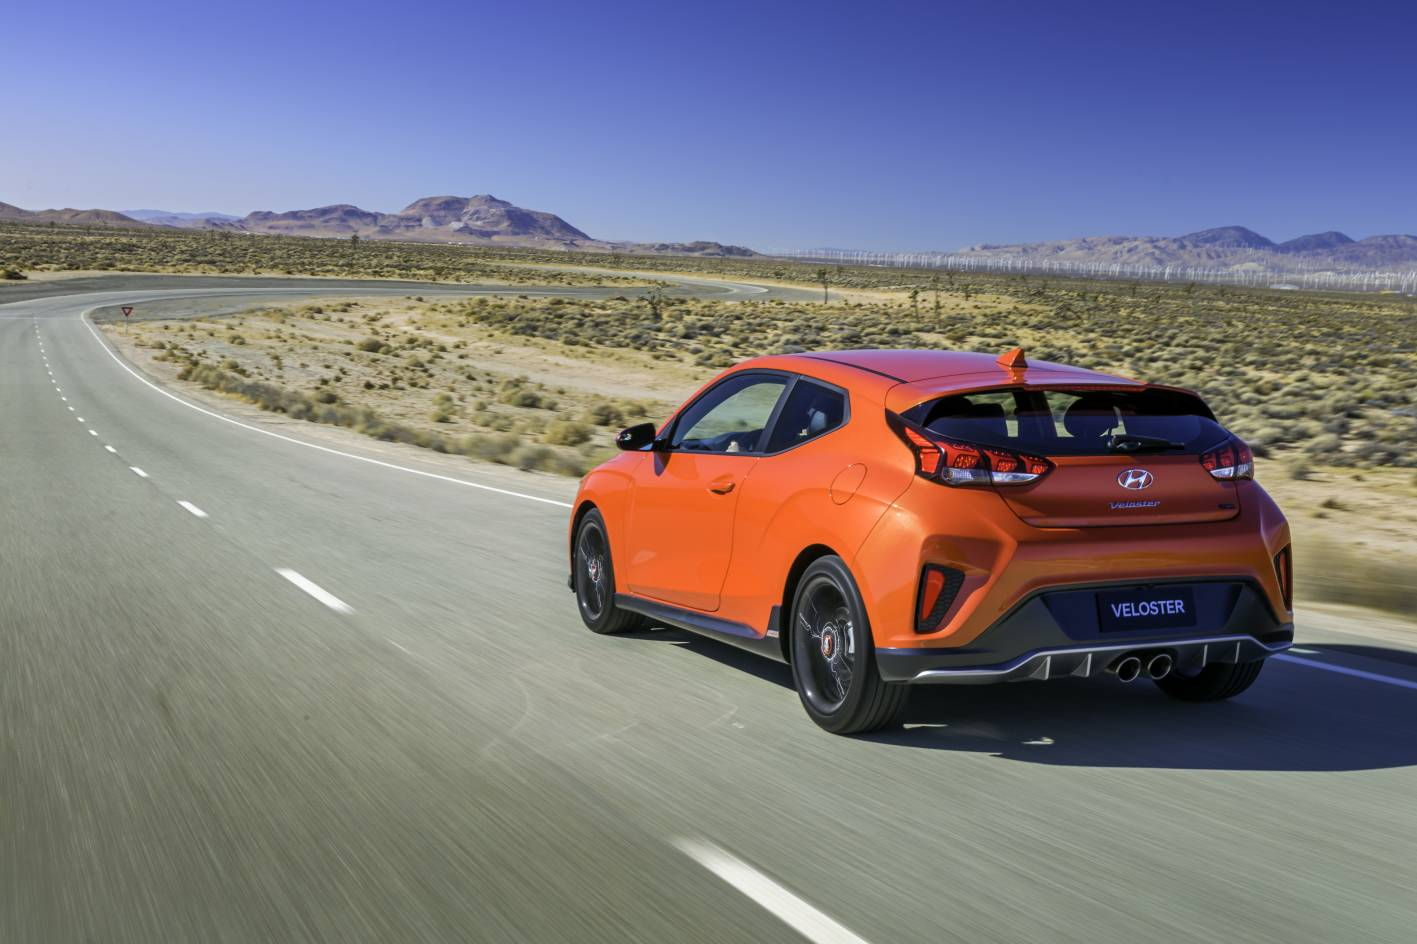 2019 Santa Fe >> 2019 Hyundai Veloster and Veloster N officially unveiled - ForceGT.com